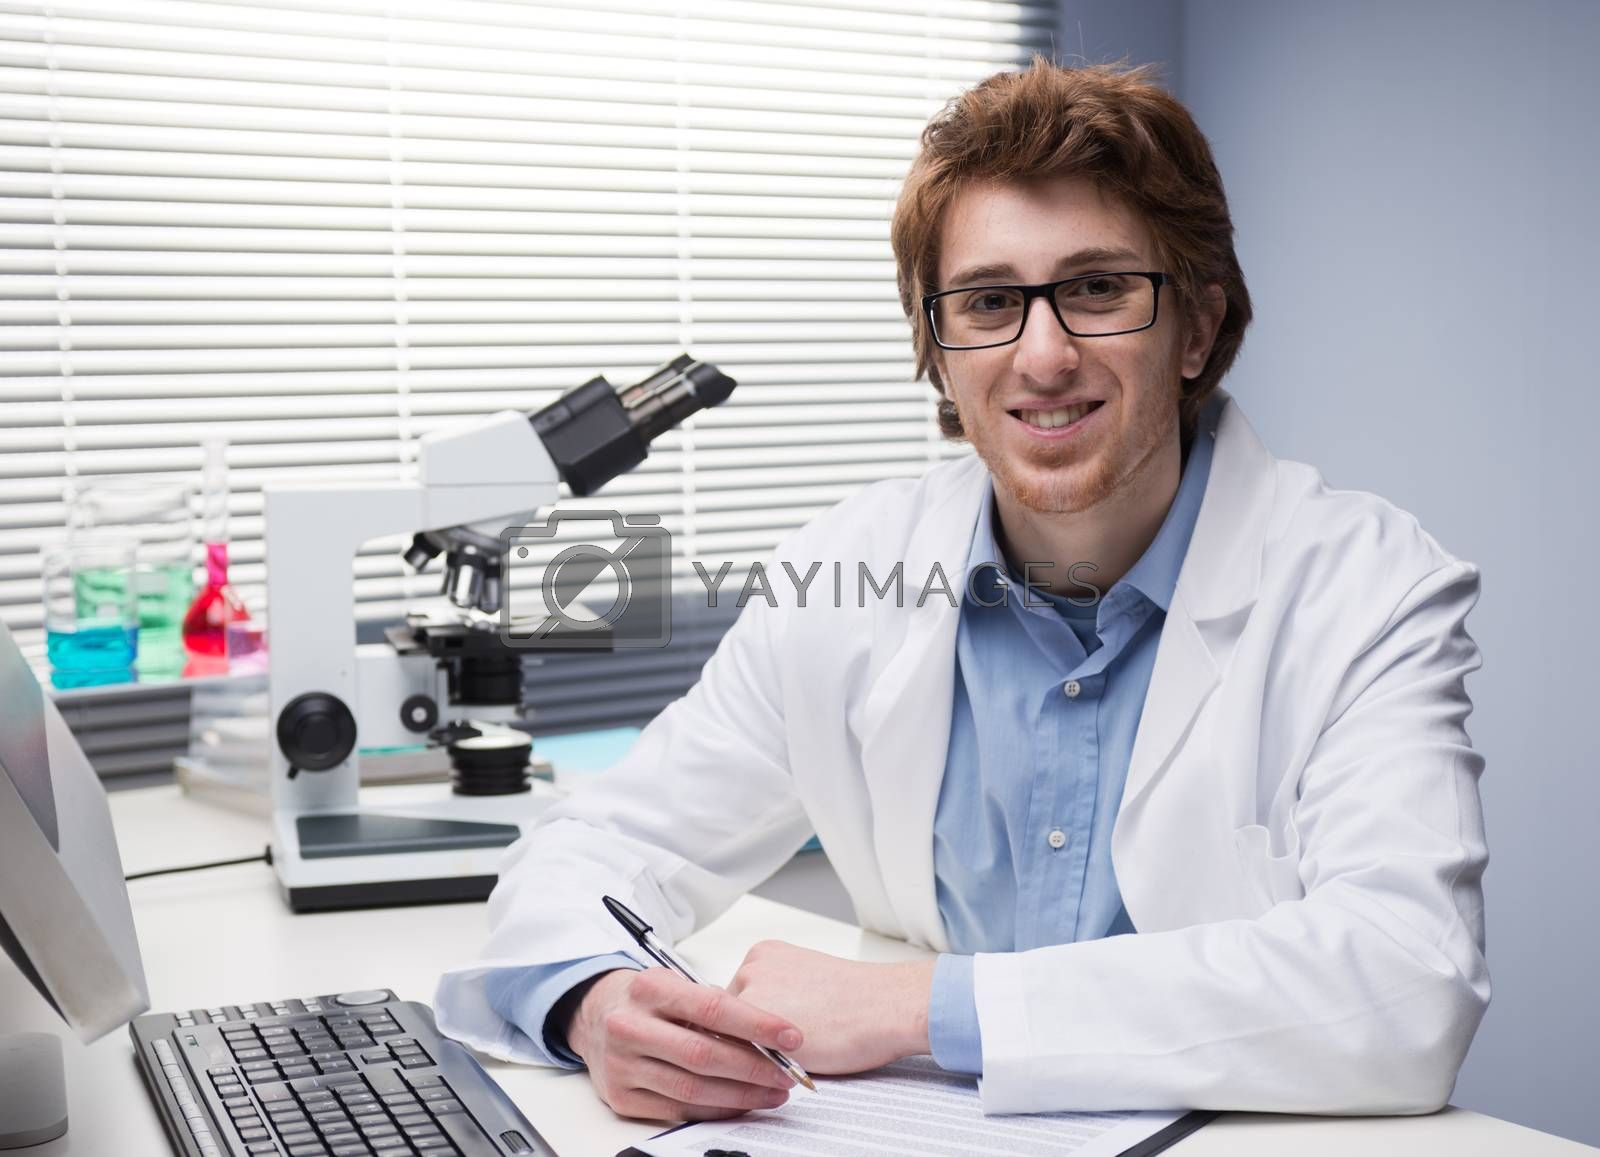 Young researcher writing notes at desk in the chemical lab.